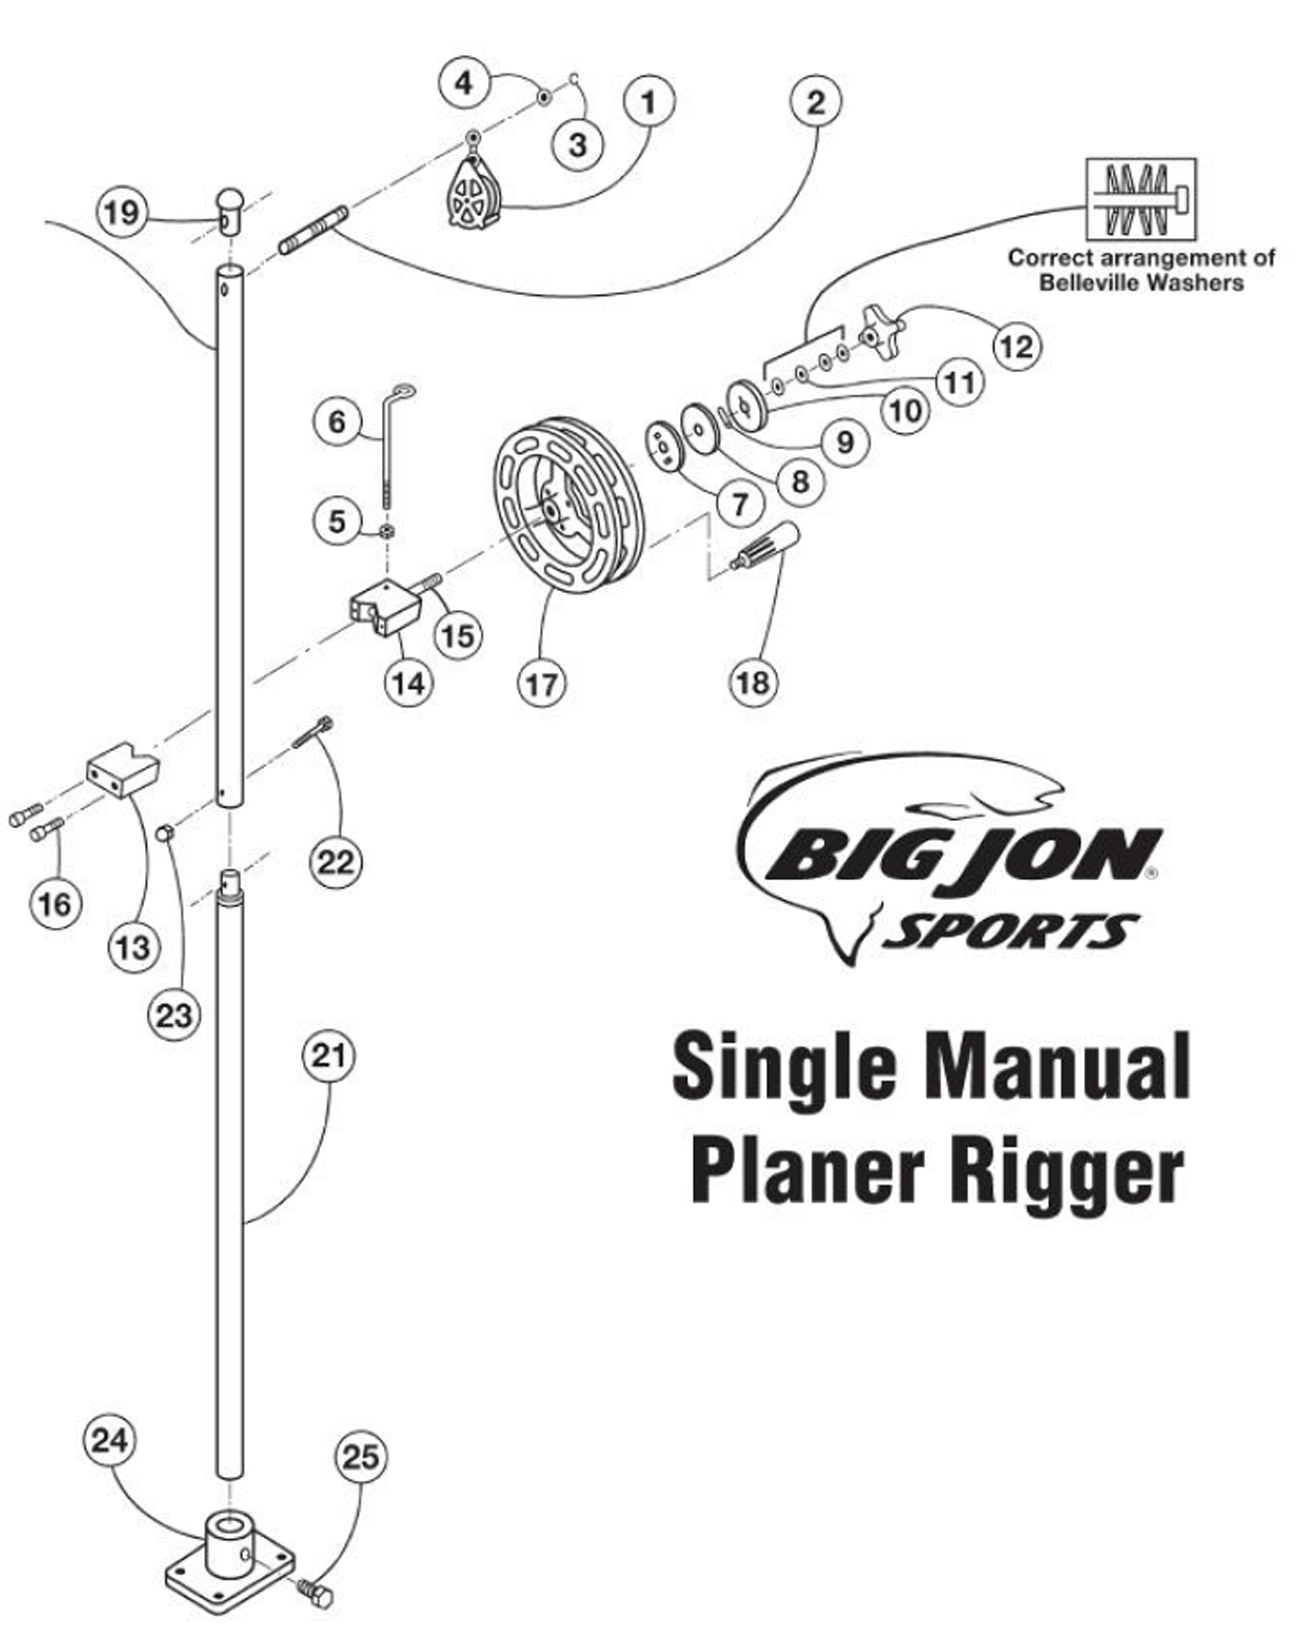 Order Big Jon Single Manual Planer Rigger Parts Online